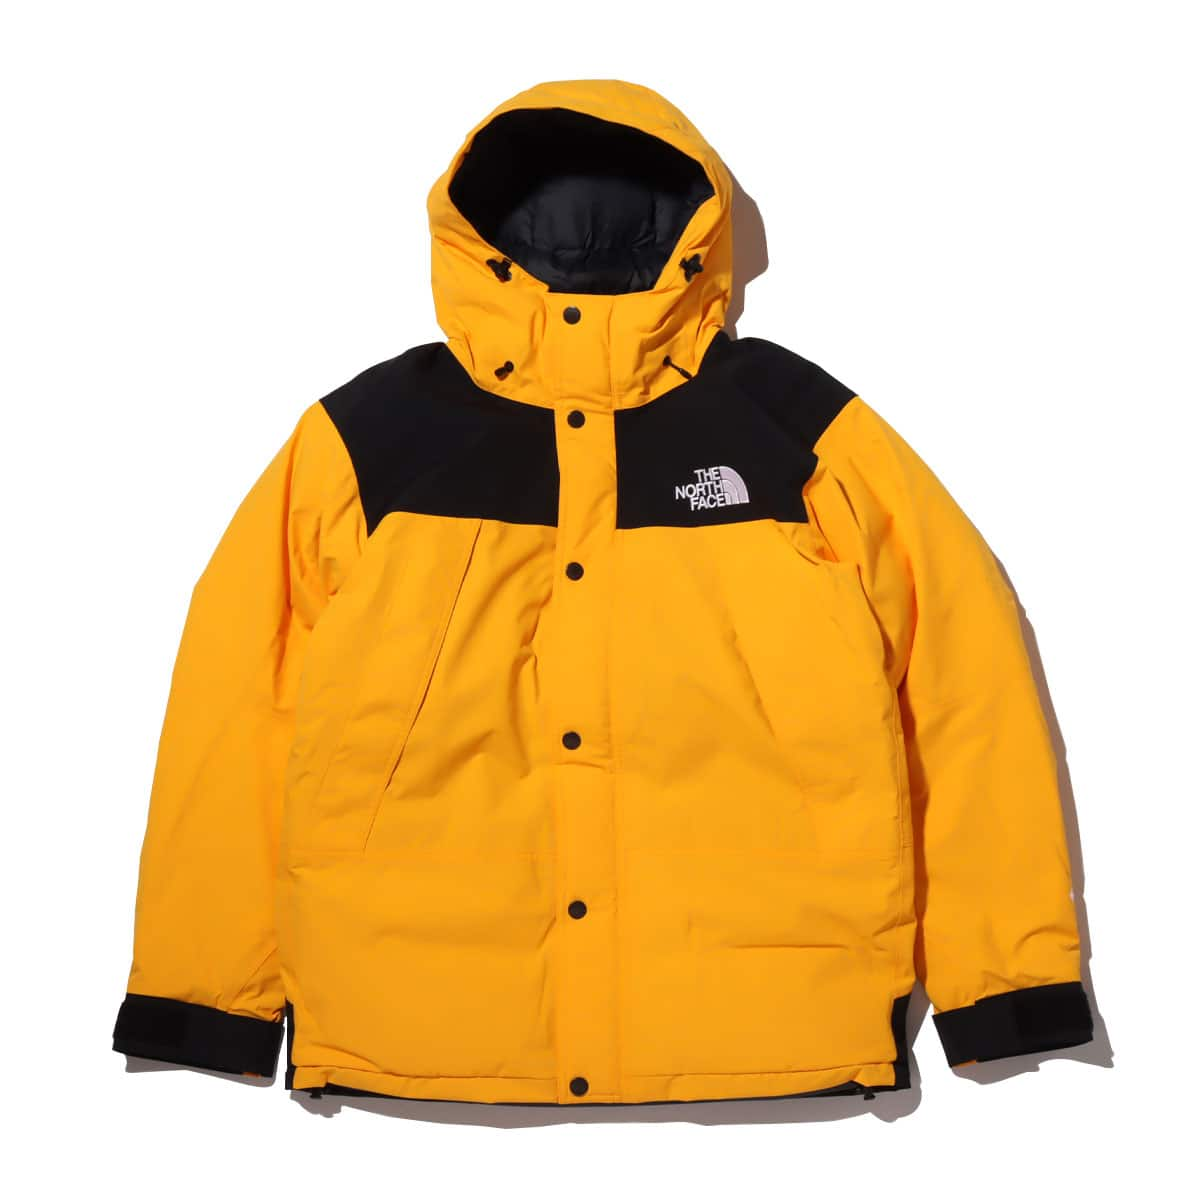 THE NORTH FACE MOUNTAIN DOWN JACKET SUMMIT GOLD 20FW-I_photo_large